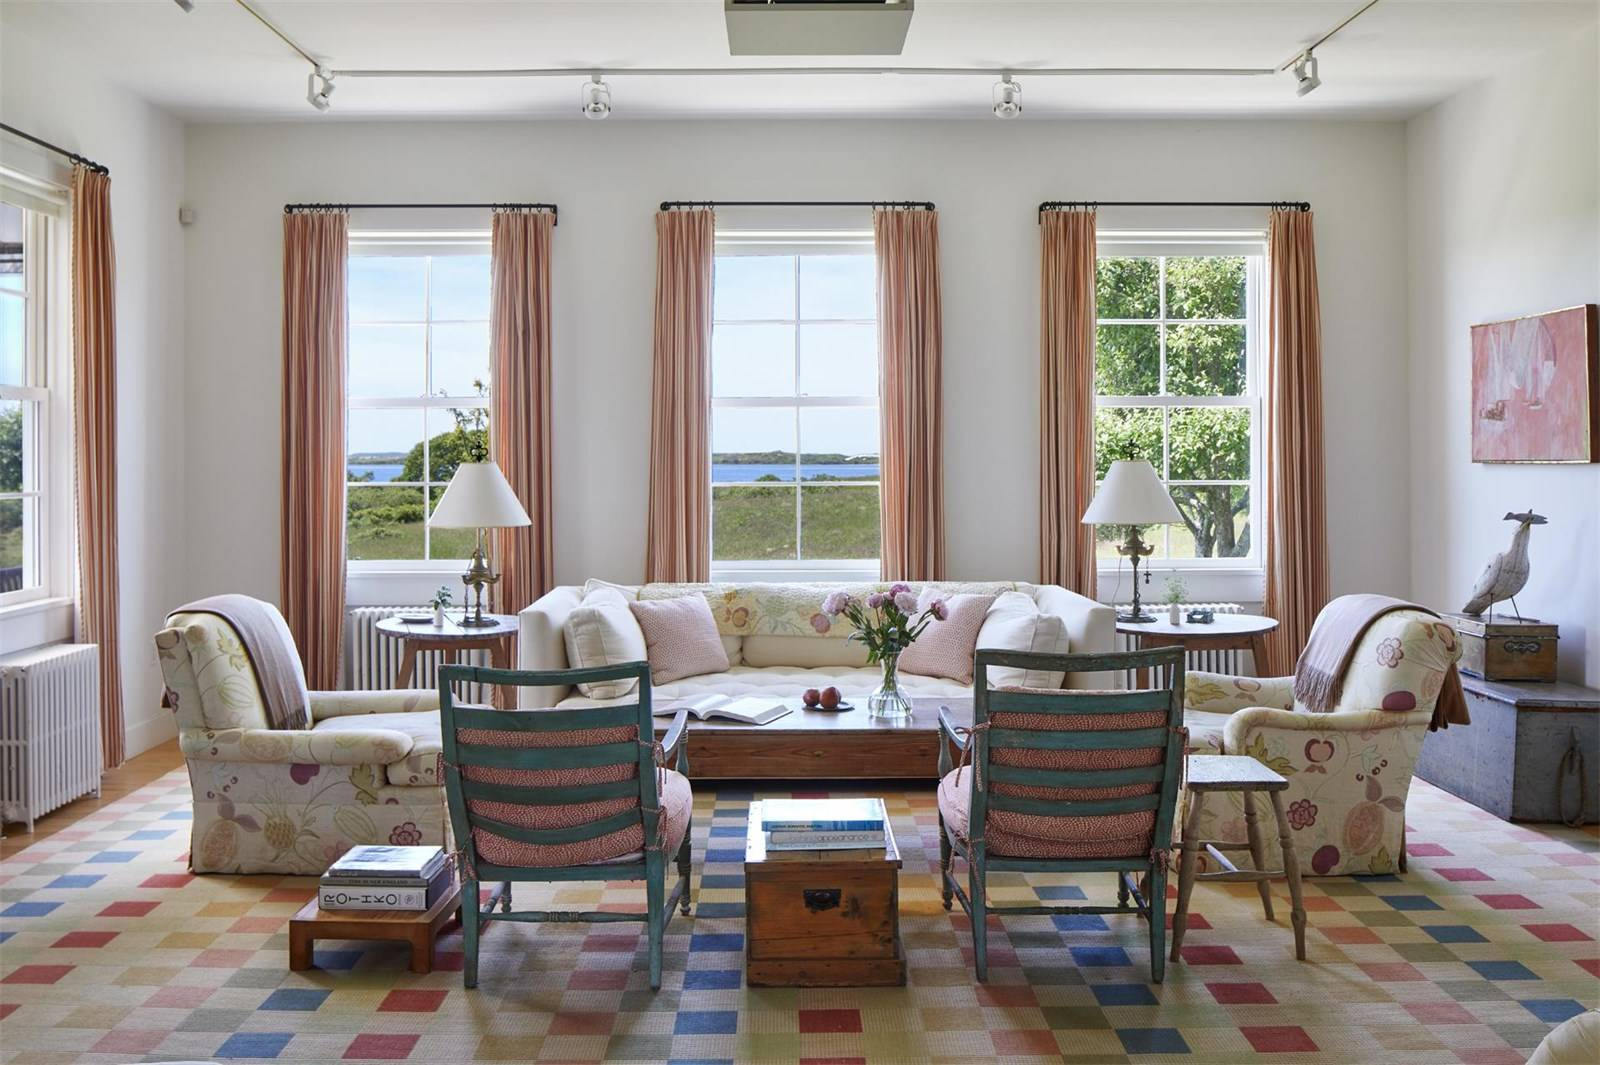 martha's vineyard, jackie kennedy onassis, real estate overview, shoreline, dunes, inside living area